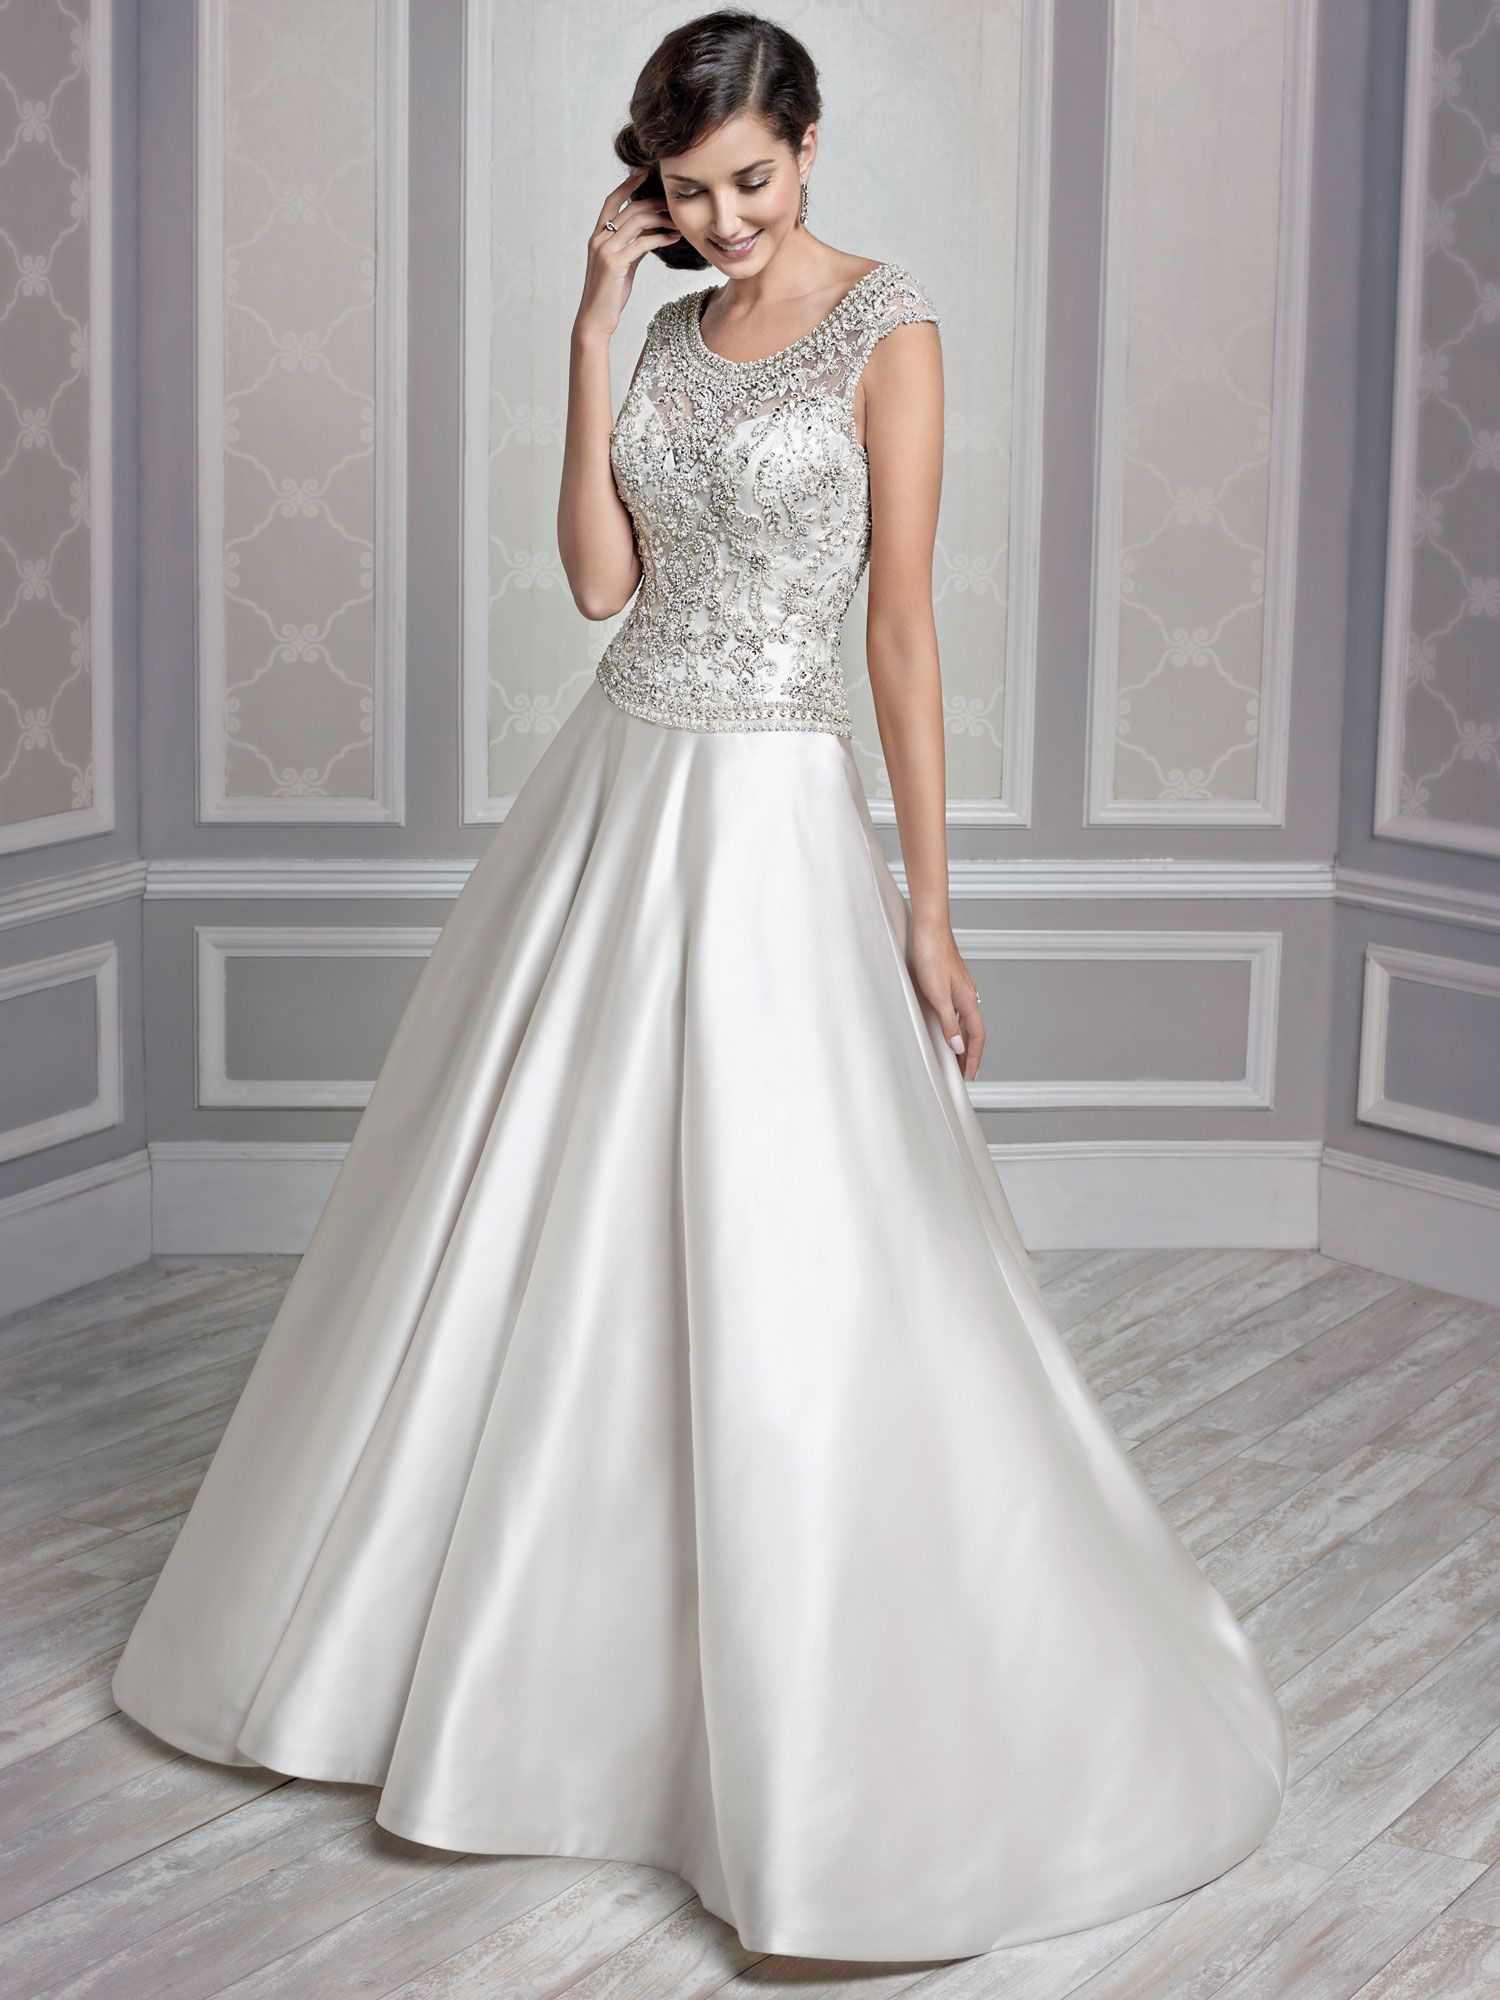 Style 1594 bridal gowns wedding dresses kenneth for Kenneth winston wedding dresses